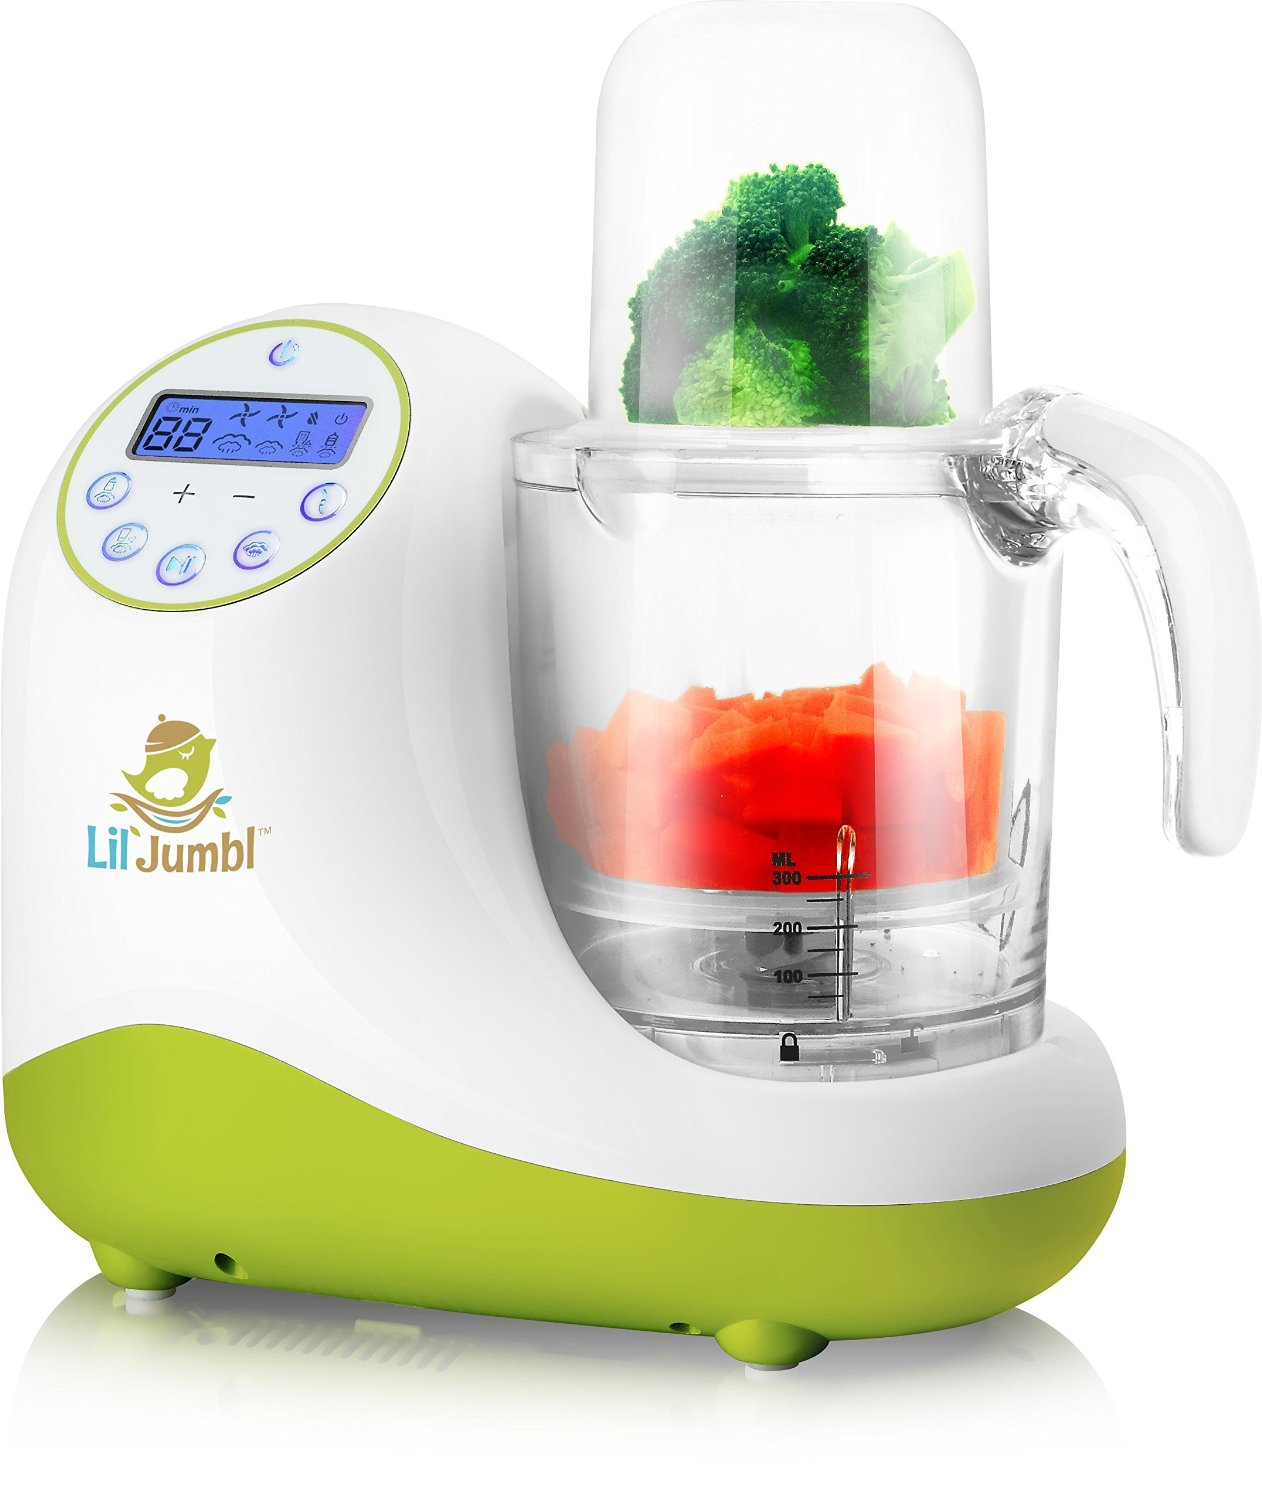 Best Steamer For Food